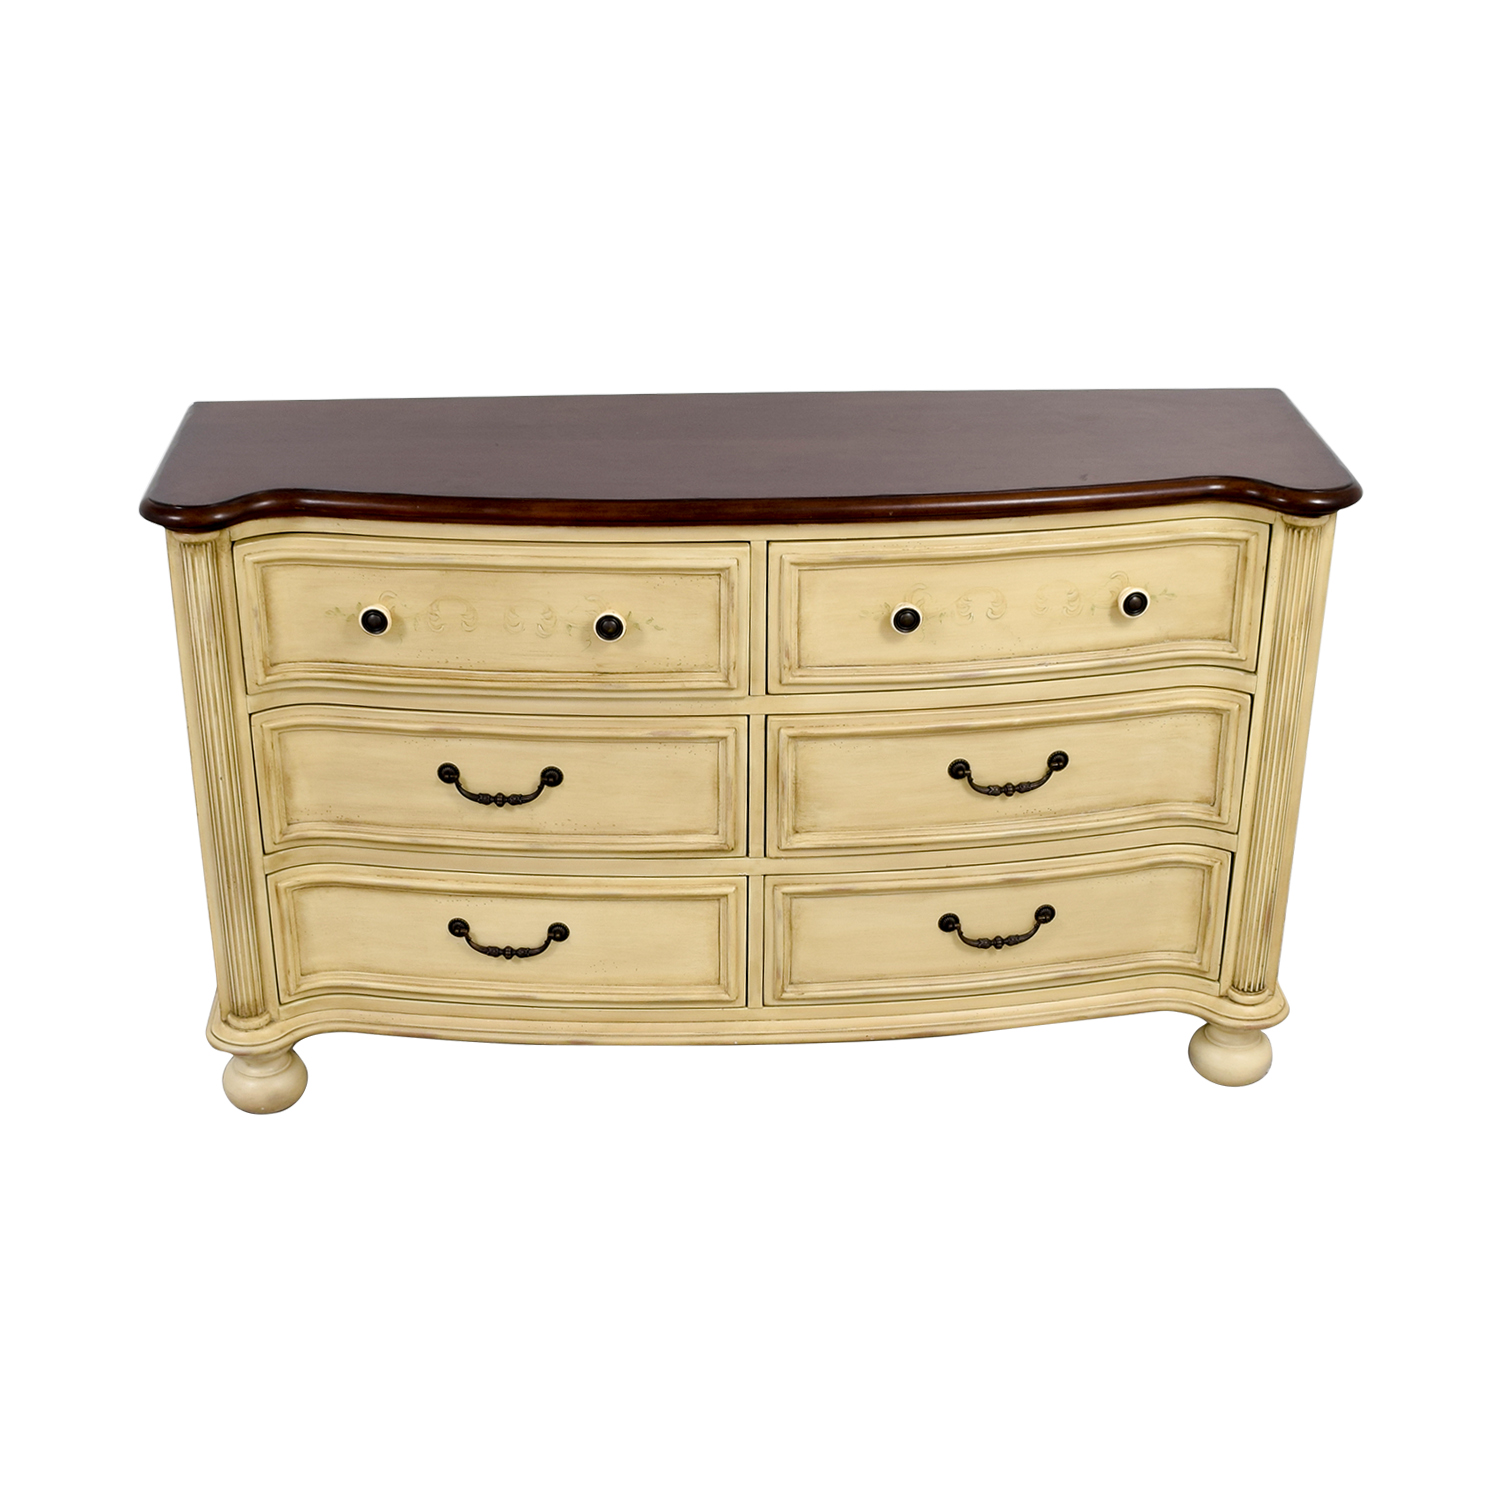 Hooker Furniture Hooker Furniture Six Drawer Dresser dimensions